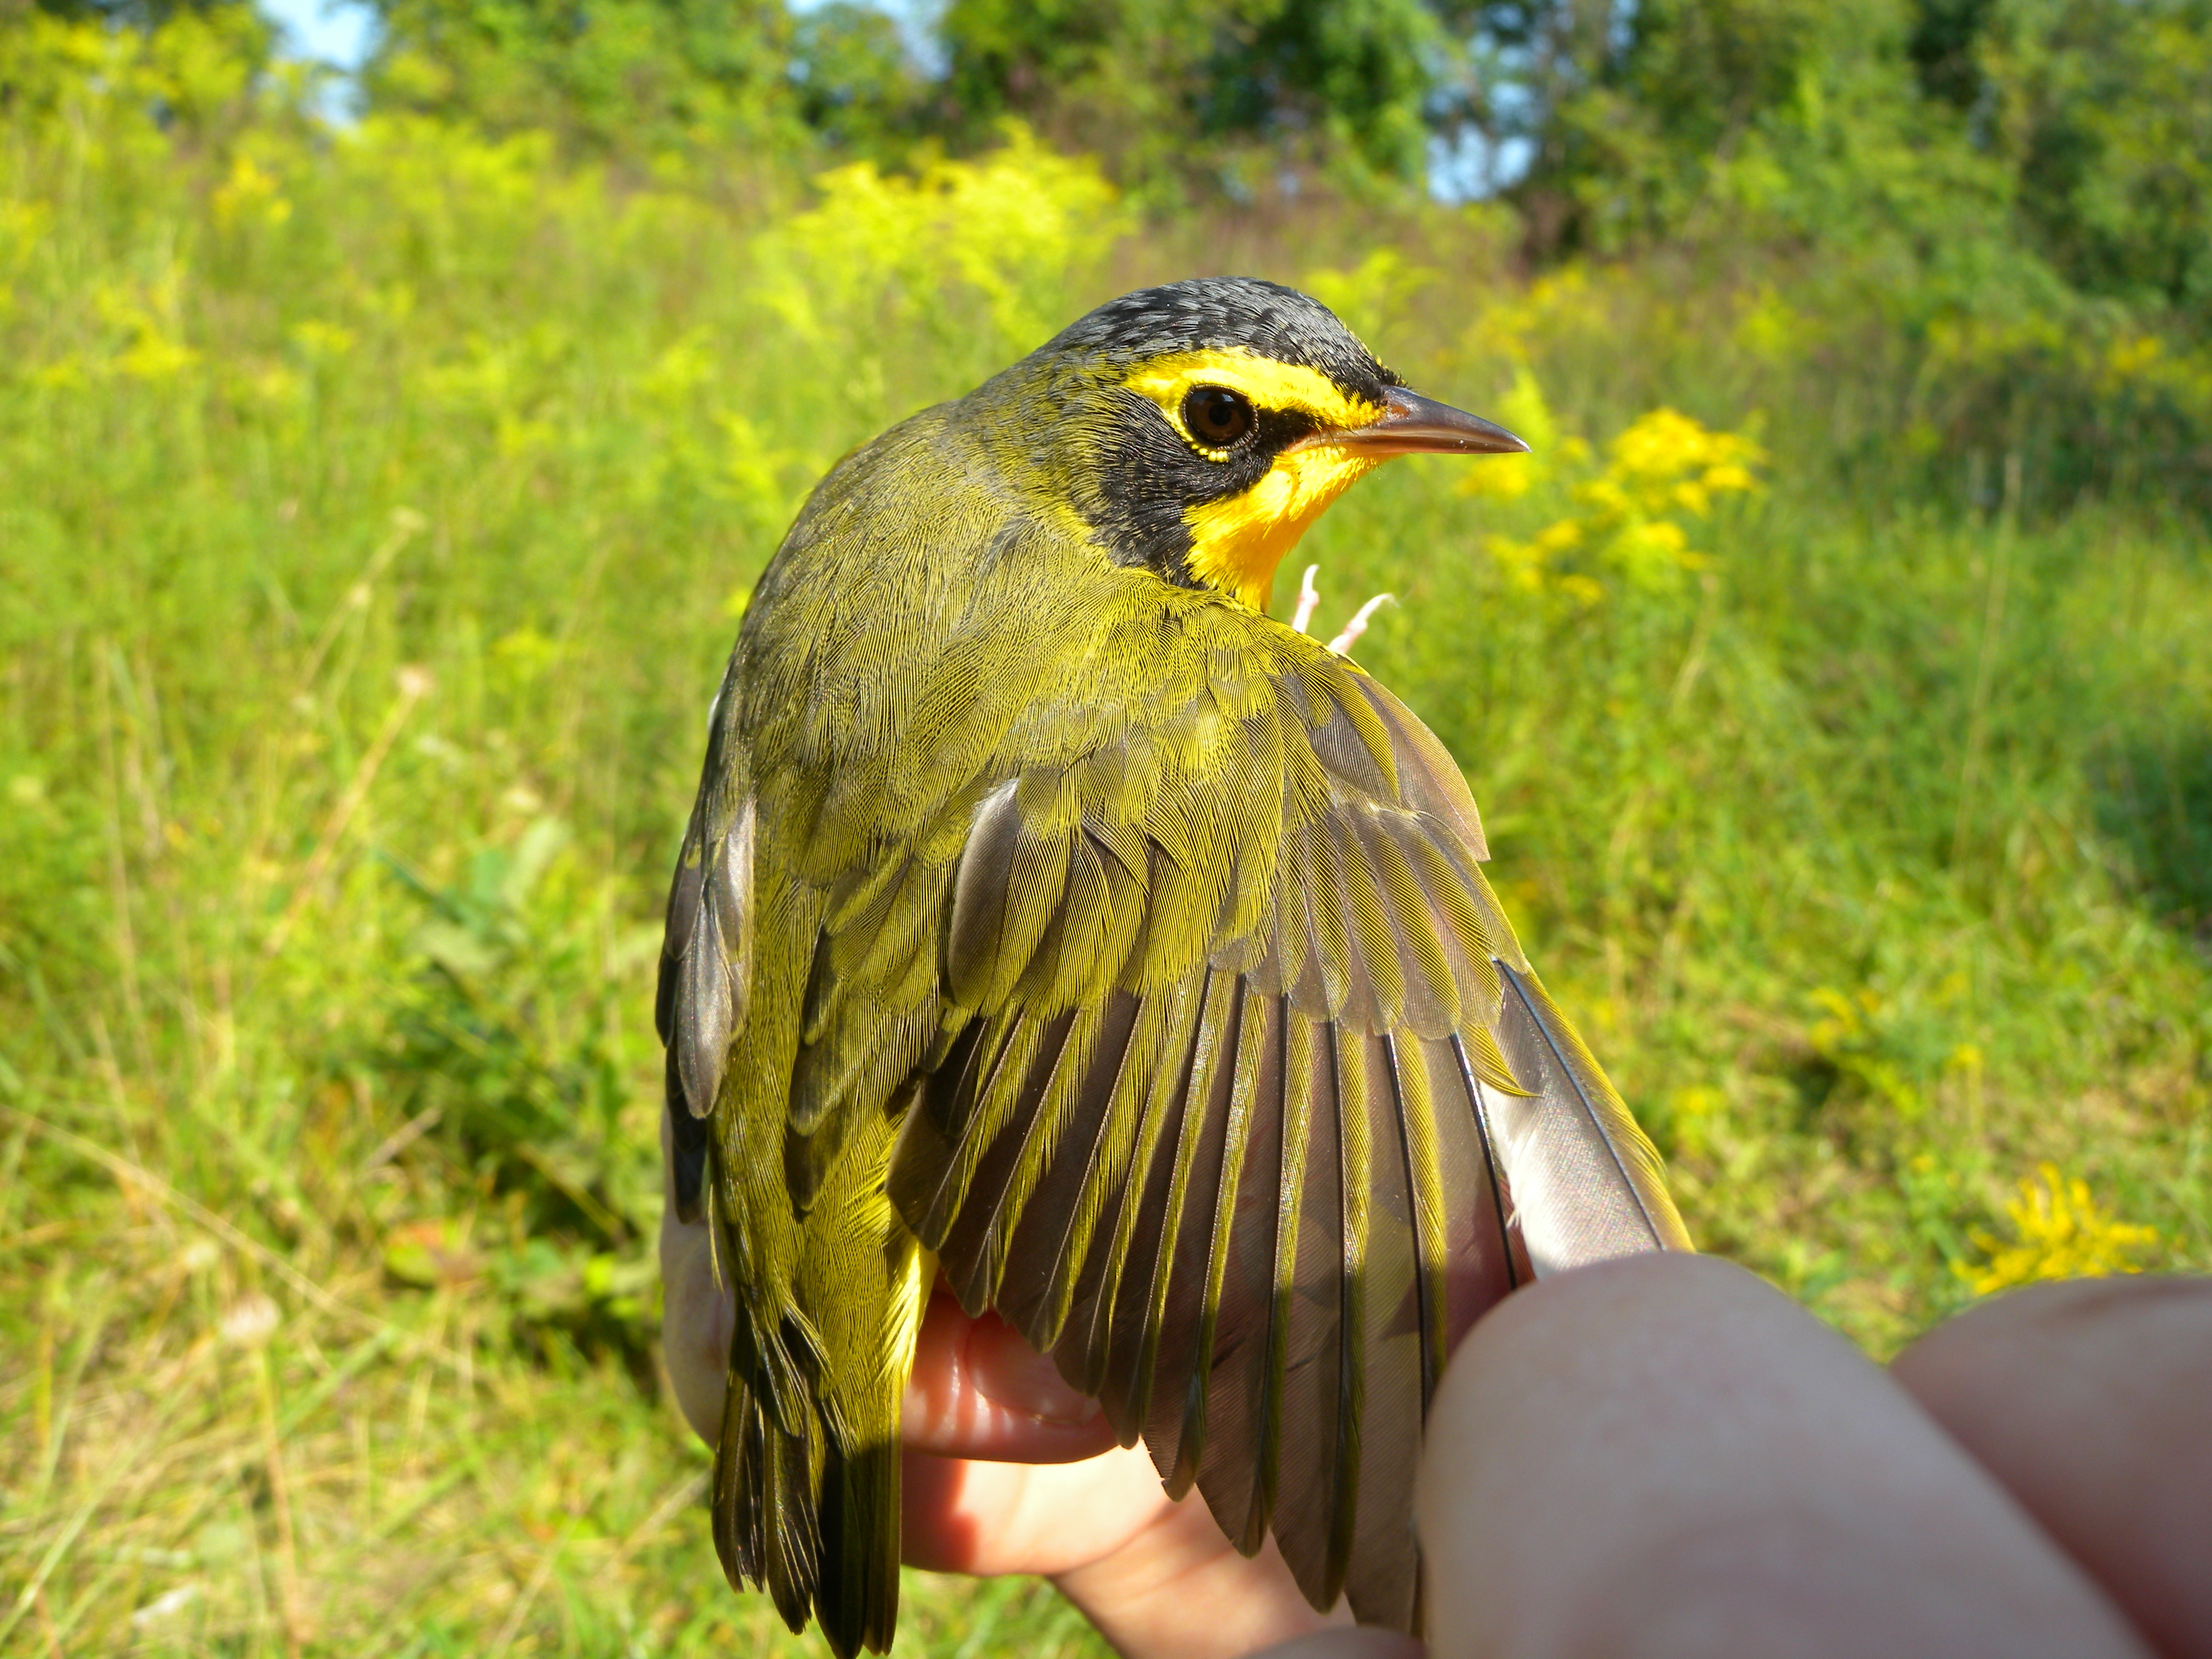 Male Kentucky Warbler using Rushton's Early Successional Scrub Habitat in the fall after first being banded in the woods during the summer.